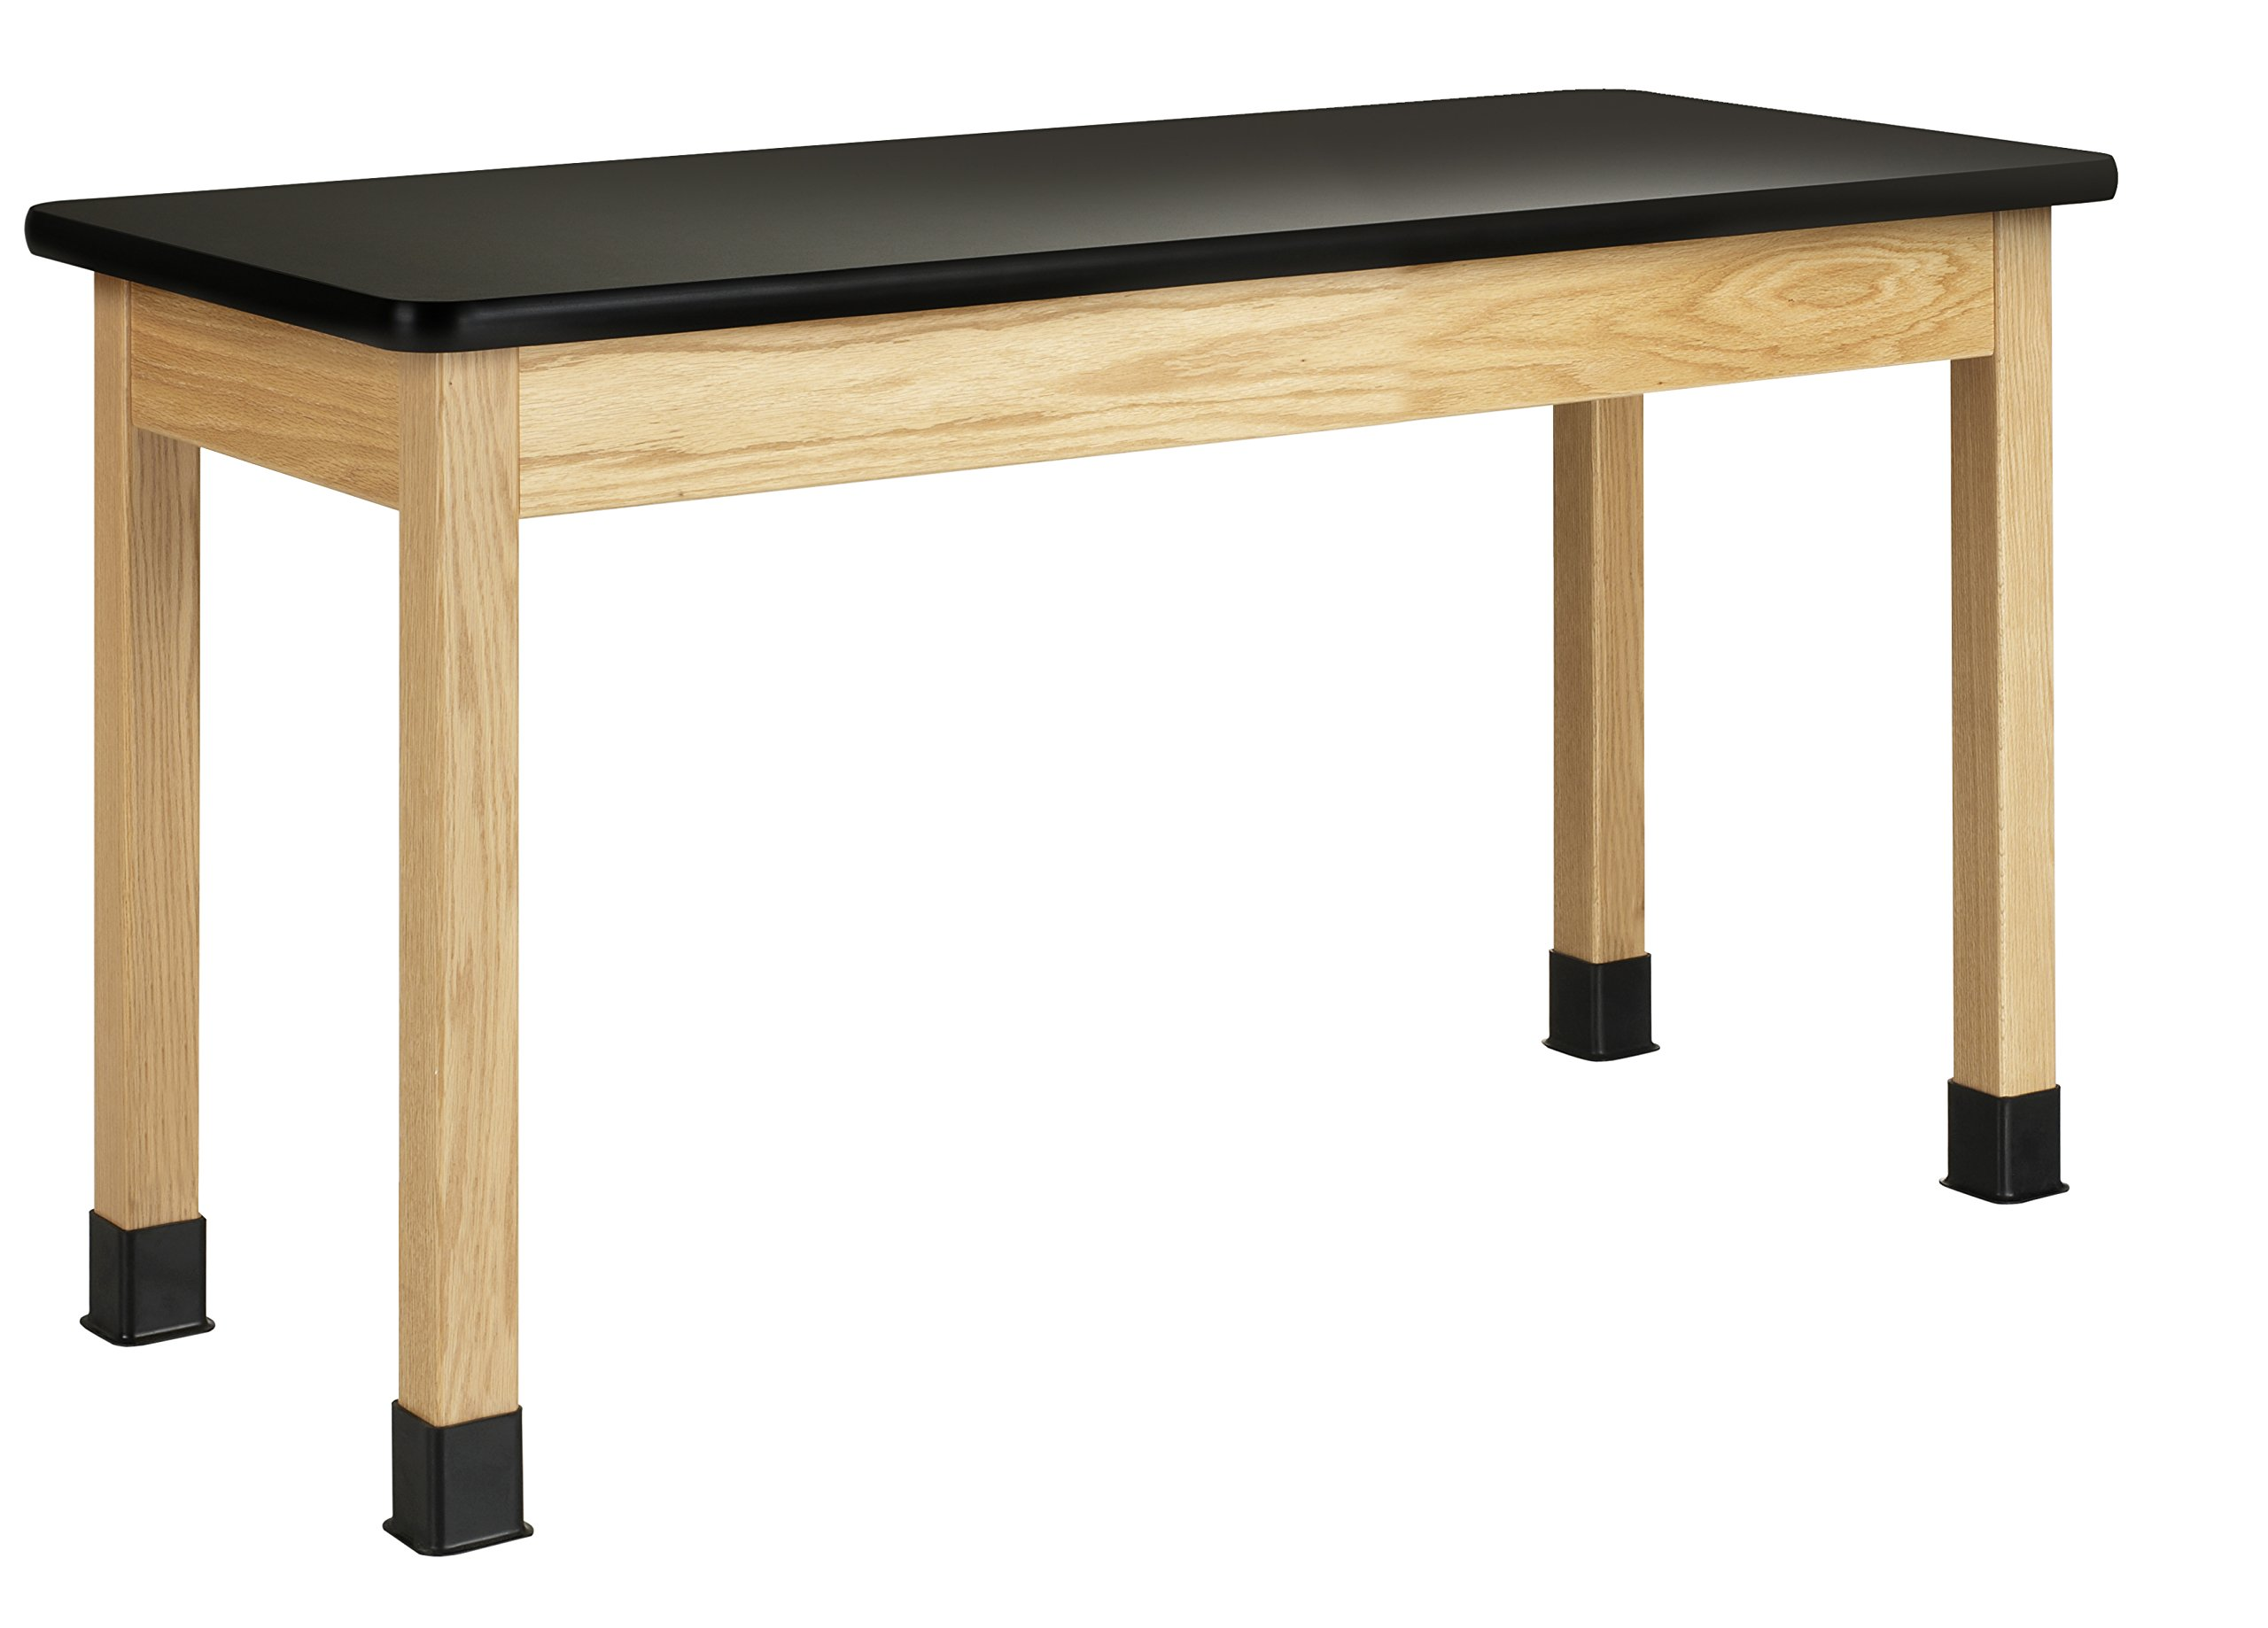 Diversified Woodcrafts P7201K30N Table - Plain Apron, Black Plastic Laminate Top, 24'' x 54'', 30'' Height, Black/Northwoods Oak by Diversified Woodcrafts (Image #1)